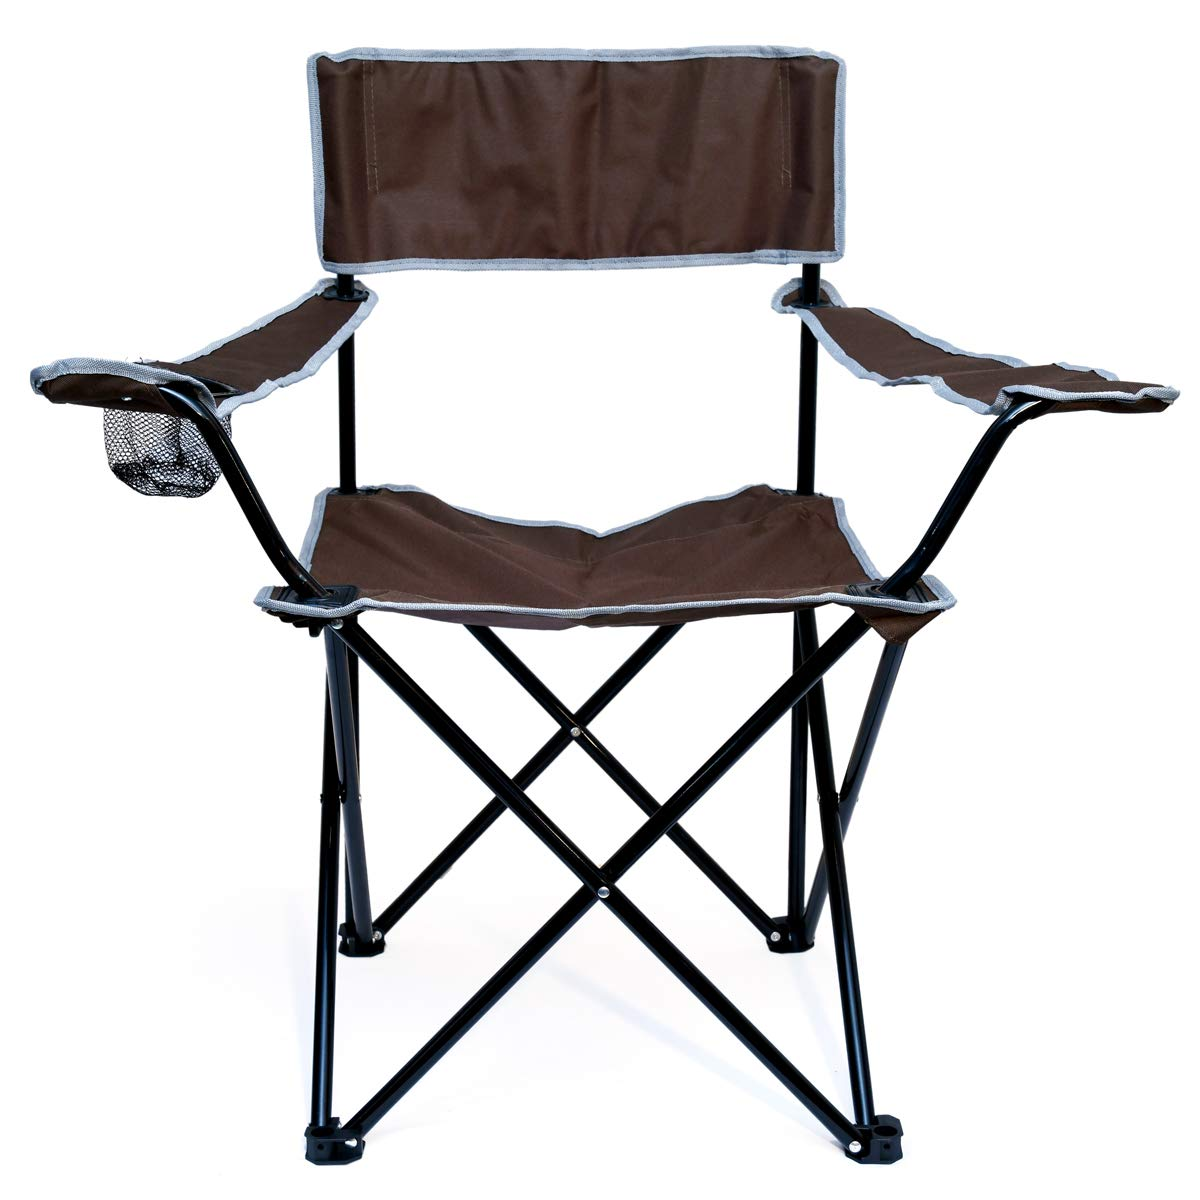 Homefast stainless steel folding portable chairsmulticolour standard amazon in electronics